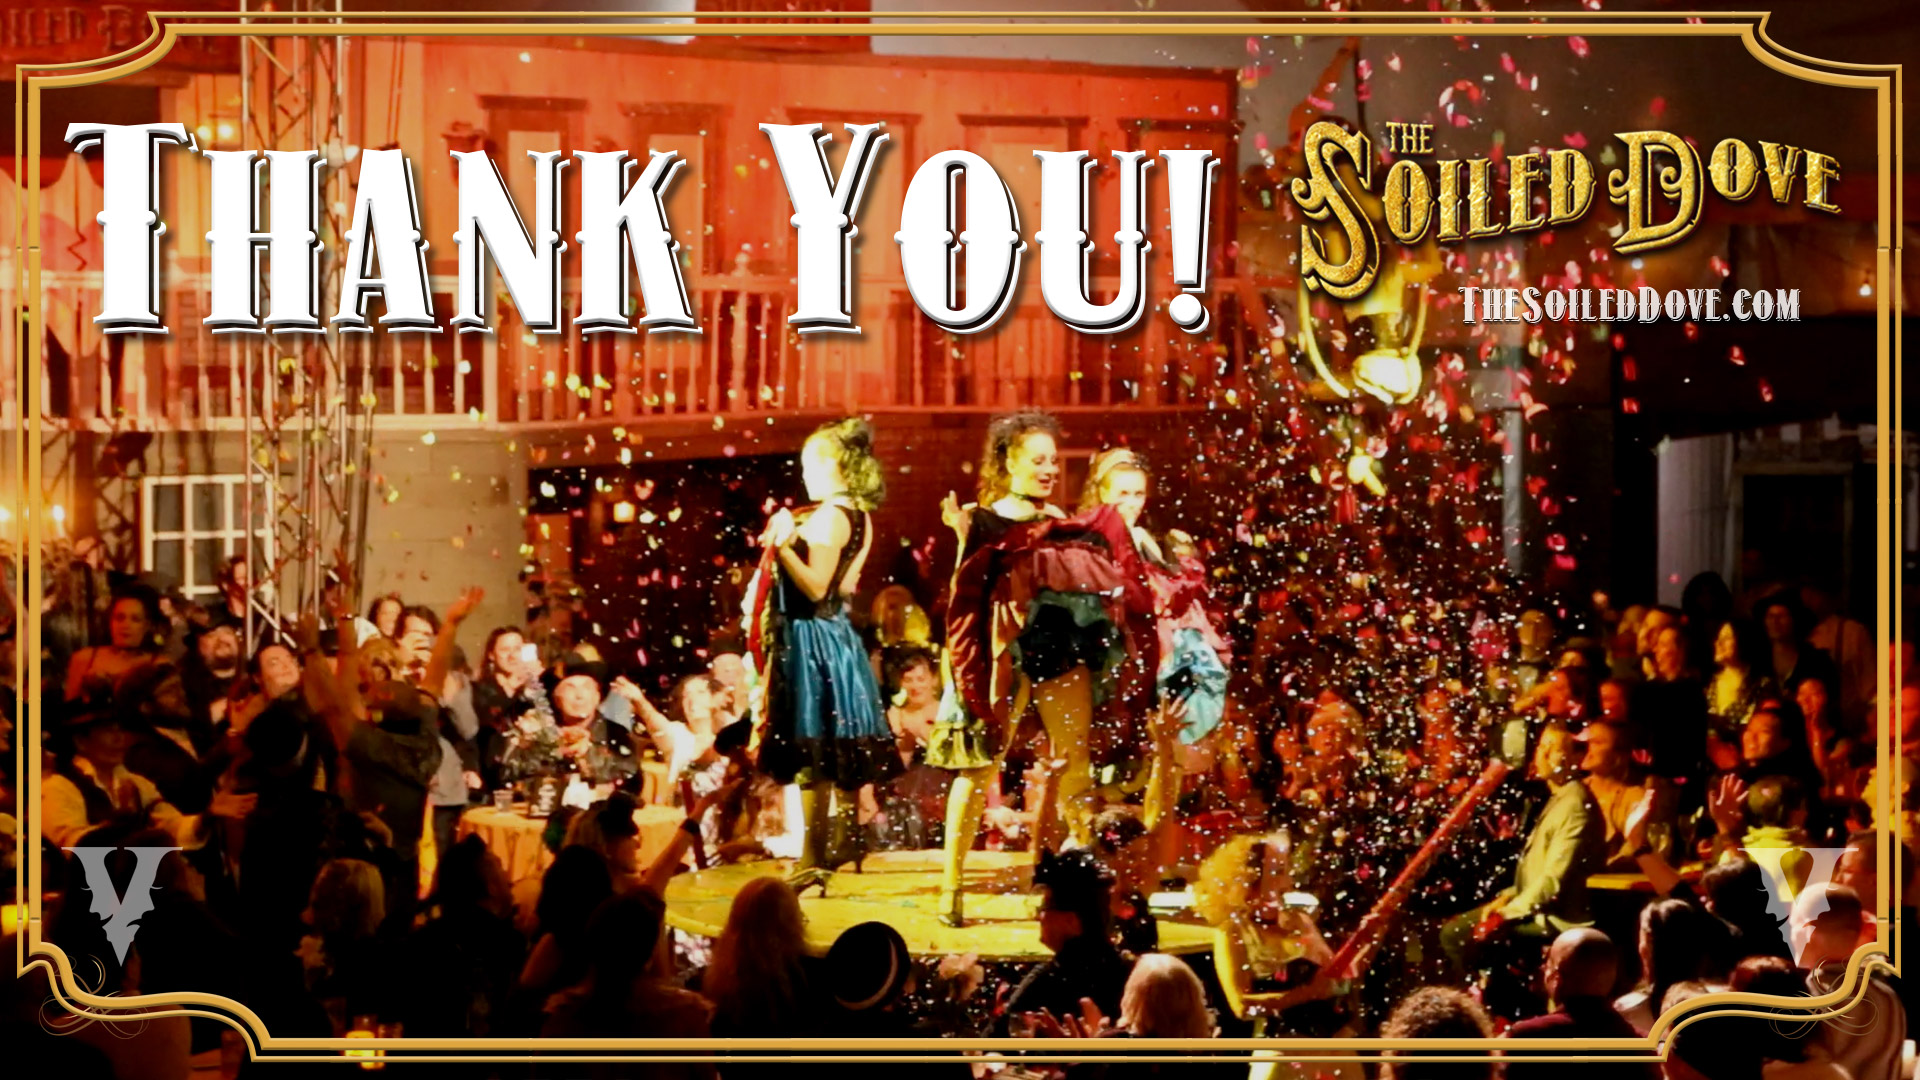 Thank you from The Soiled Dove